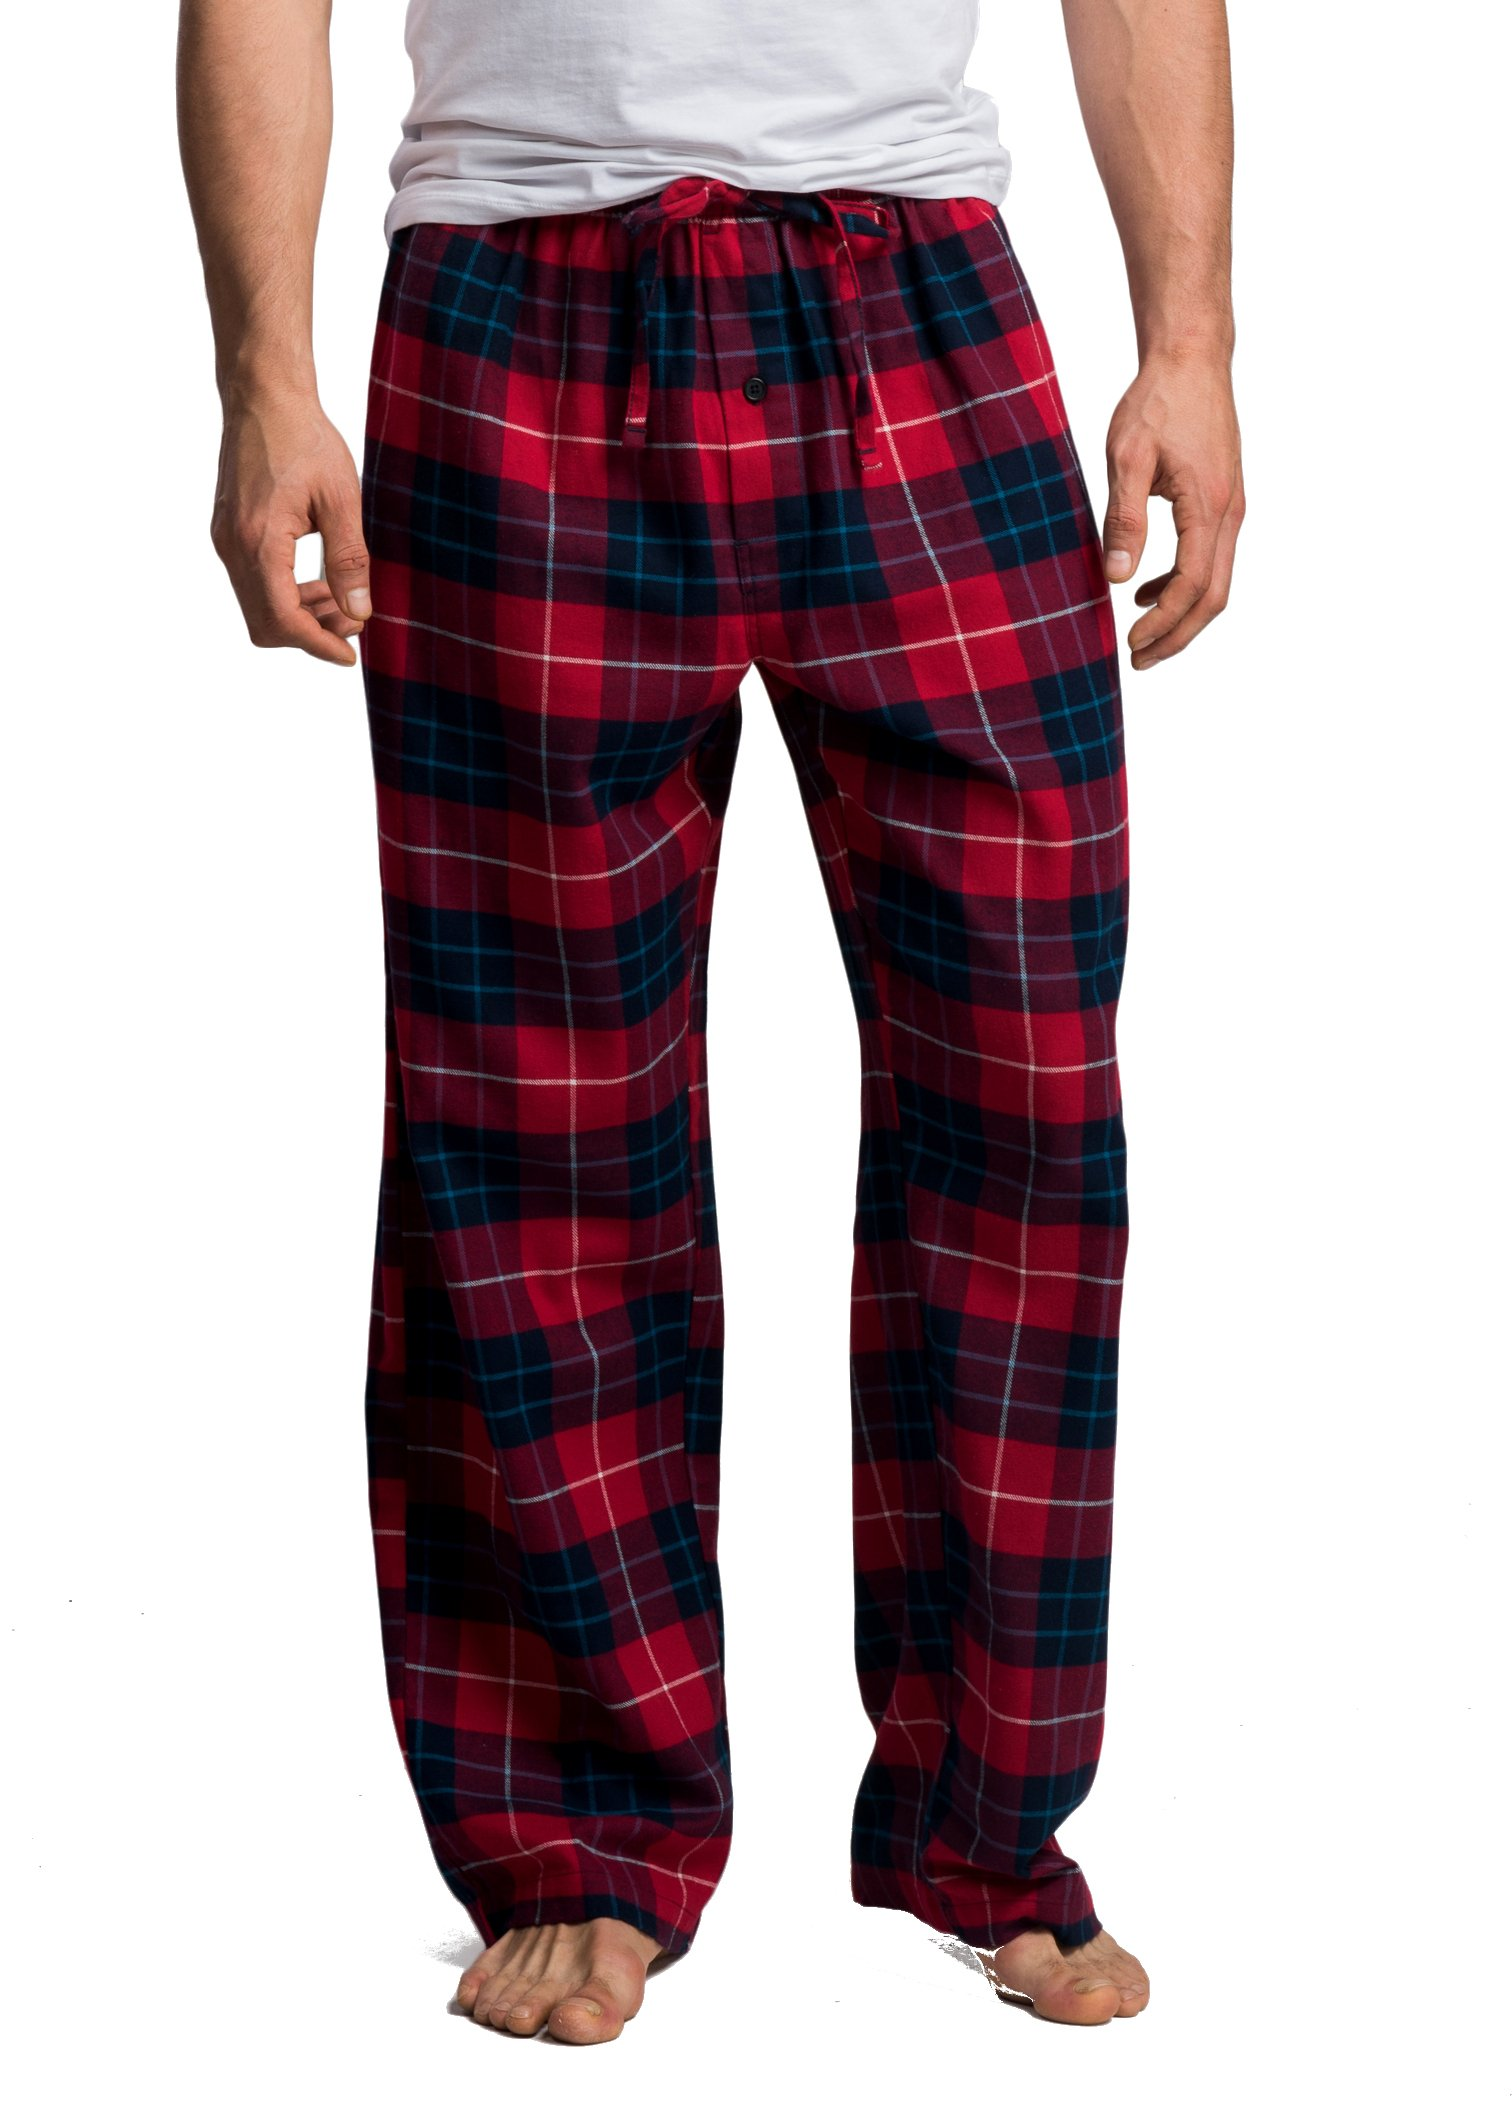 CYZ Men's 100% Cotton Super Soft Flannel Plaid Pajama Pants-F17015-L by CYZ Collection (Image #1)